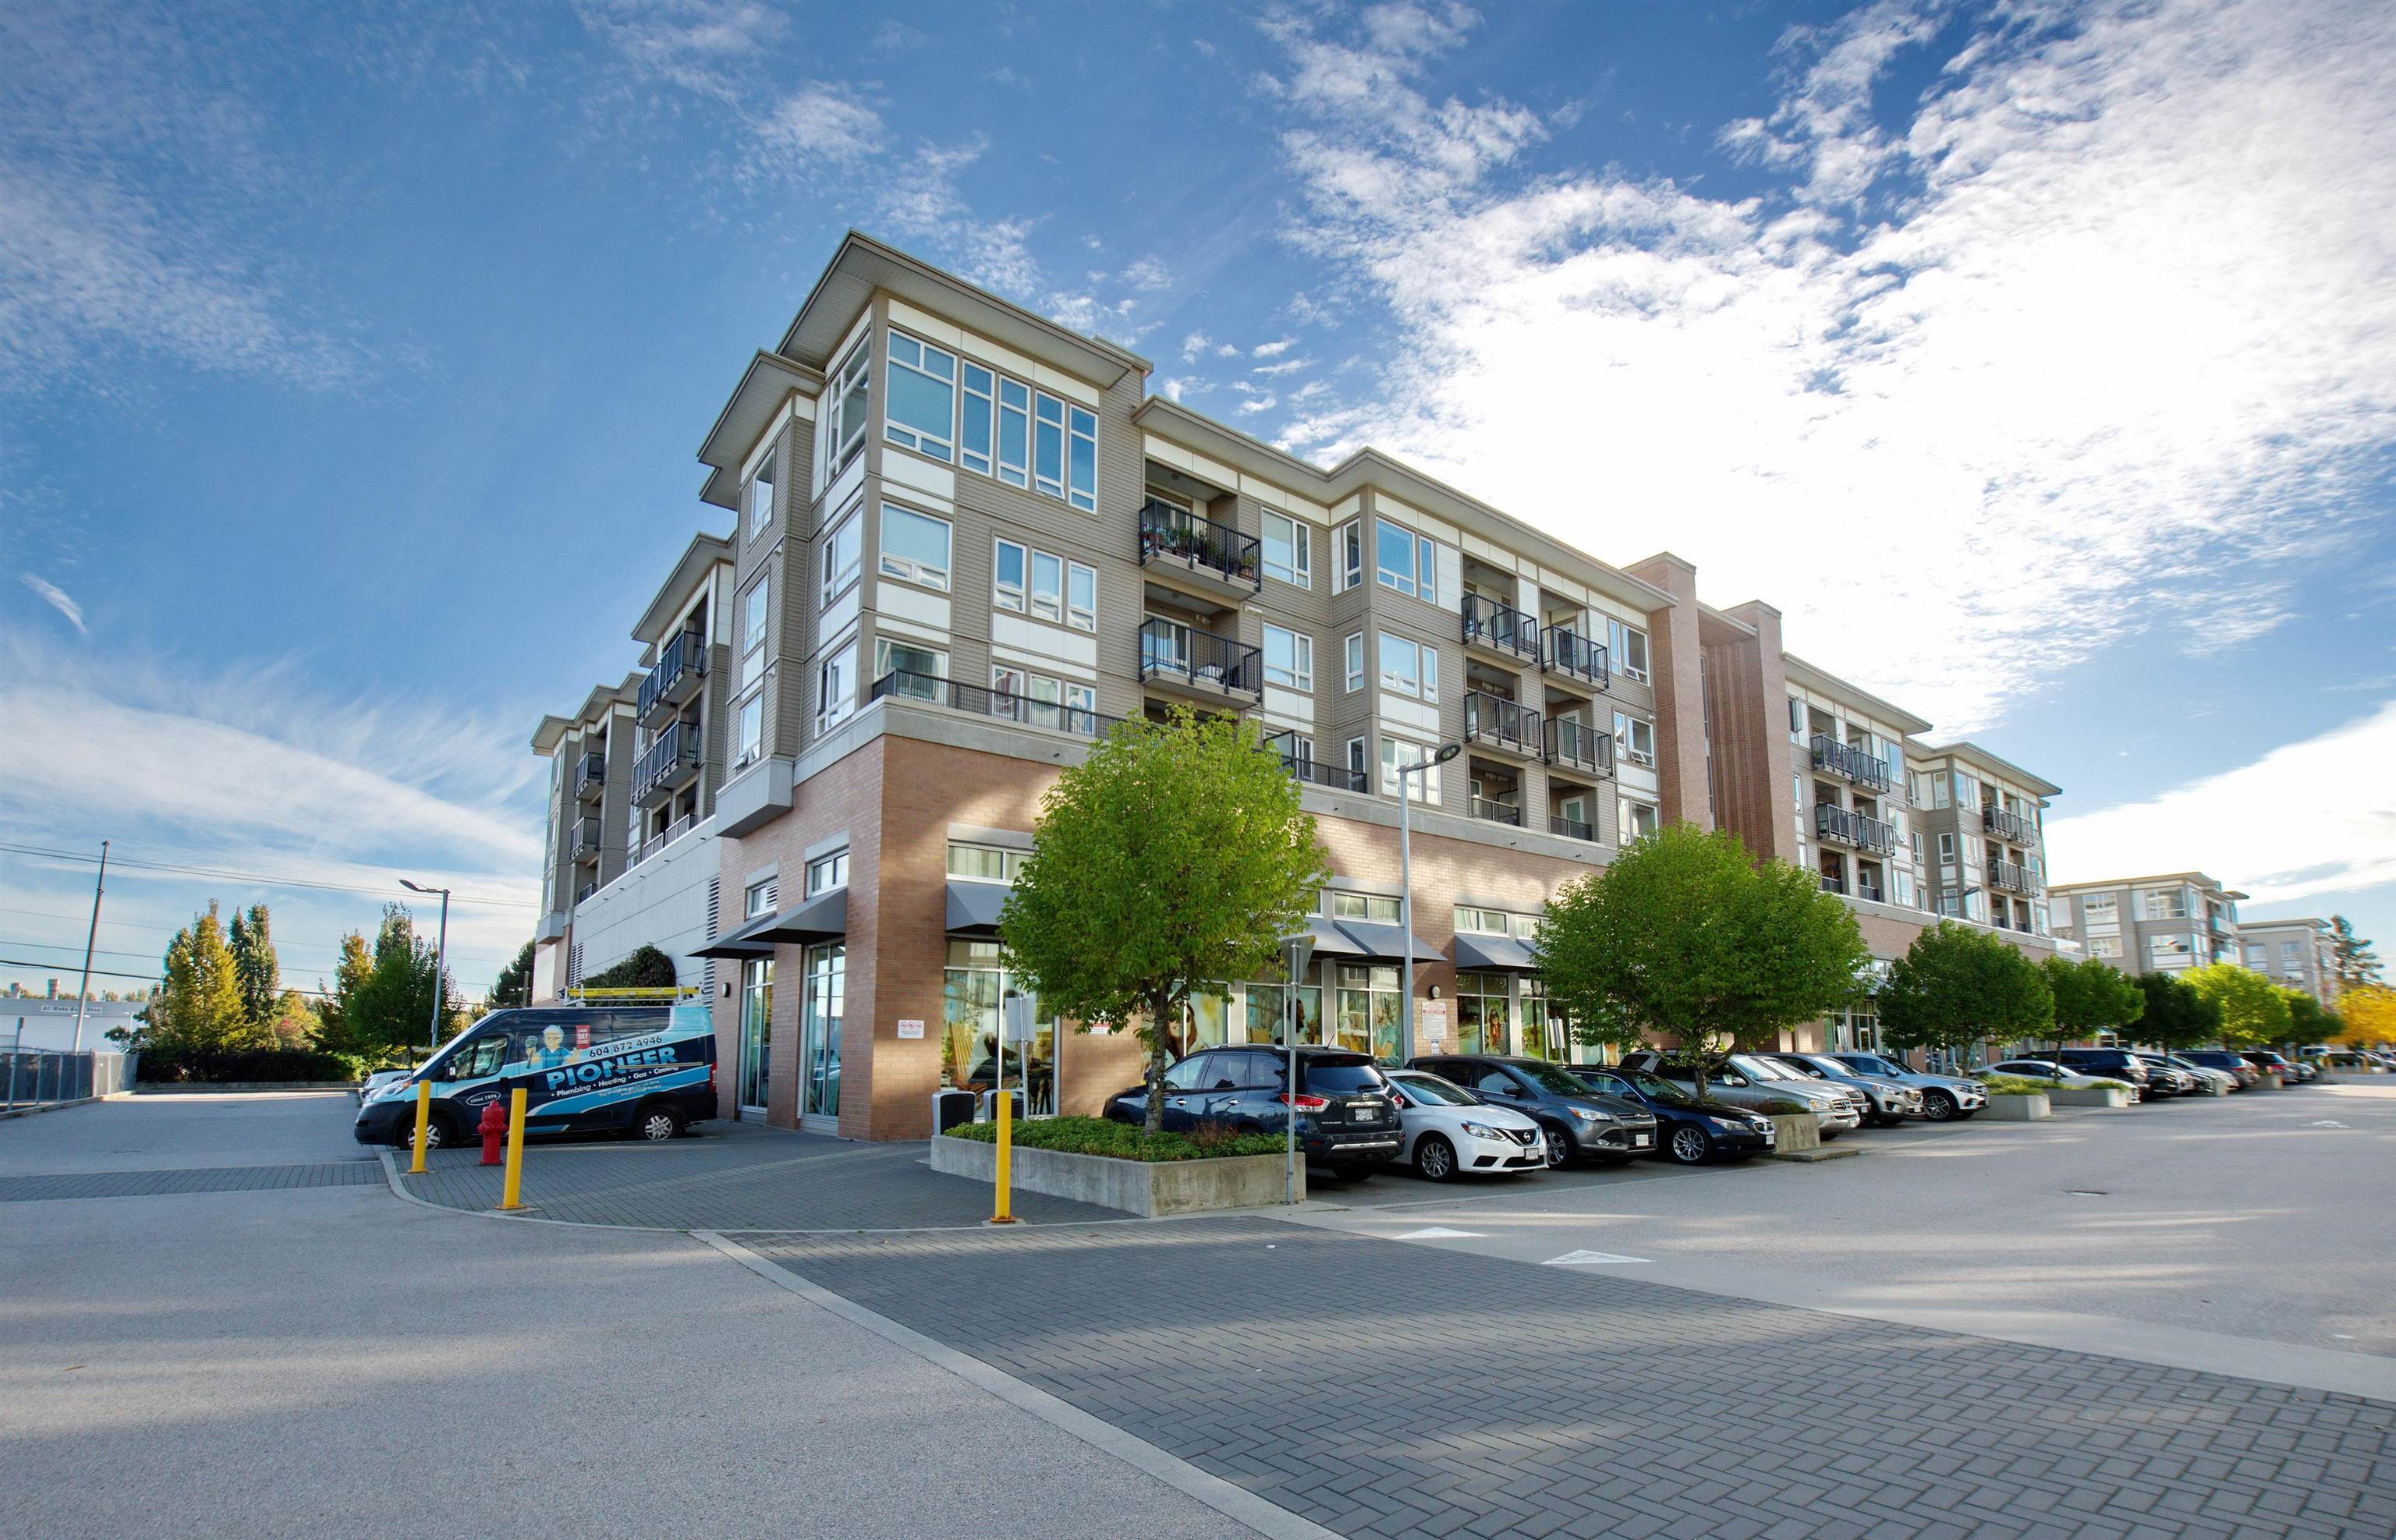 333 12339 STEVESTON HIGHWAY - Ironwood Apartment/Condo for sale, 2 Bedrooms (R2623959)